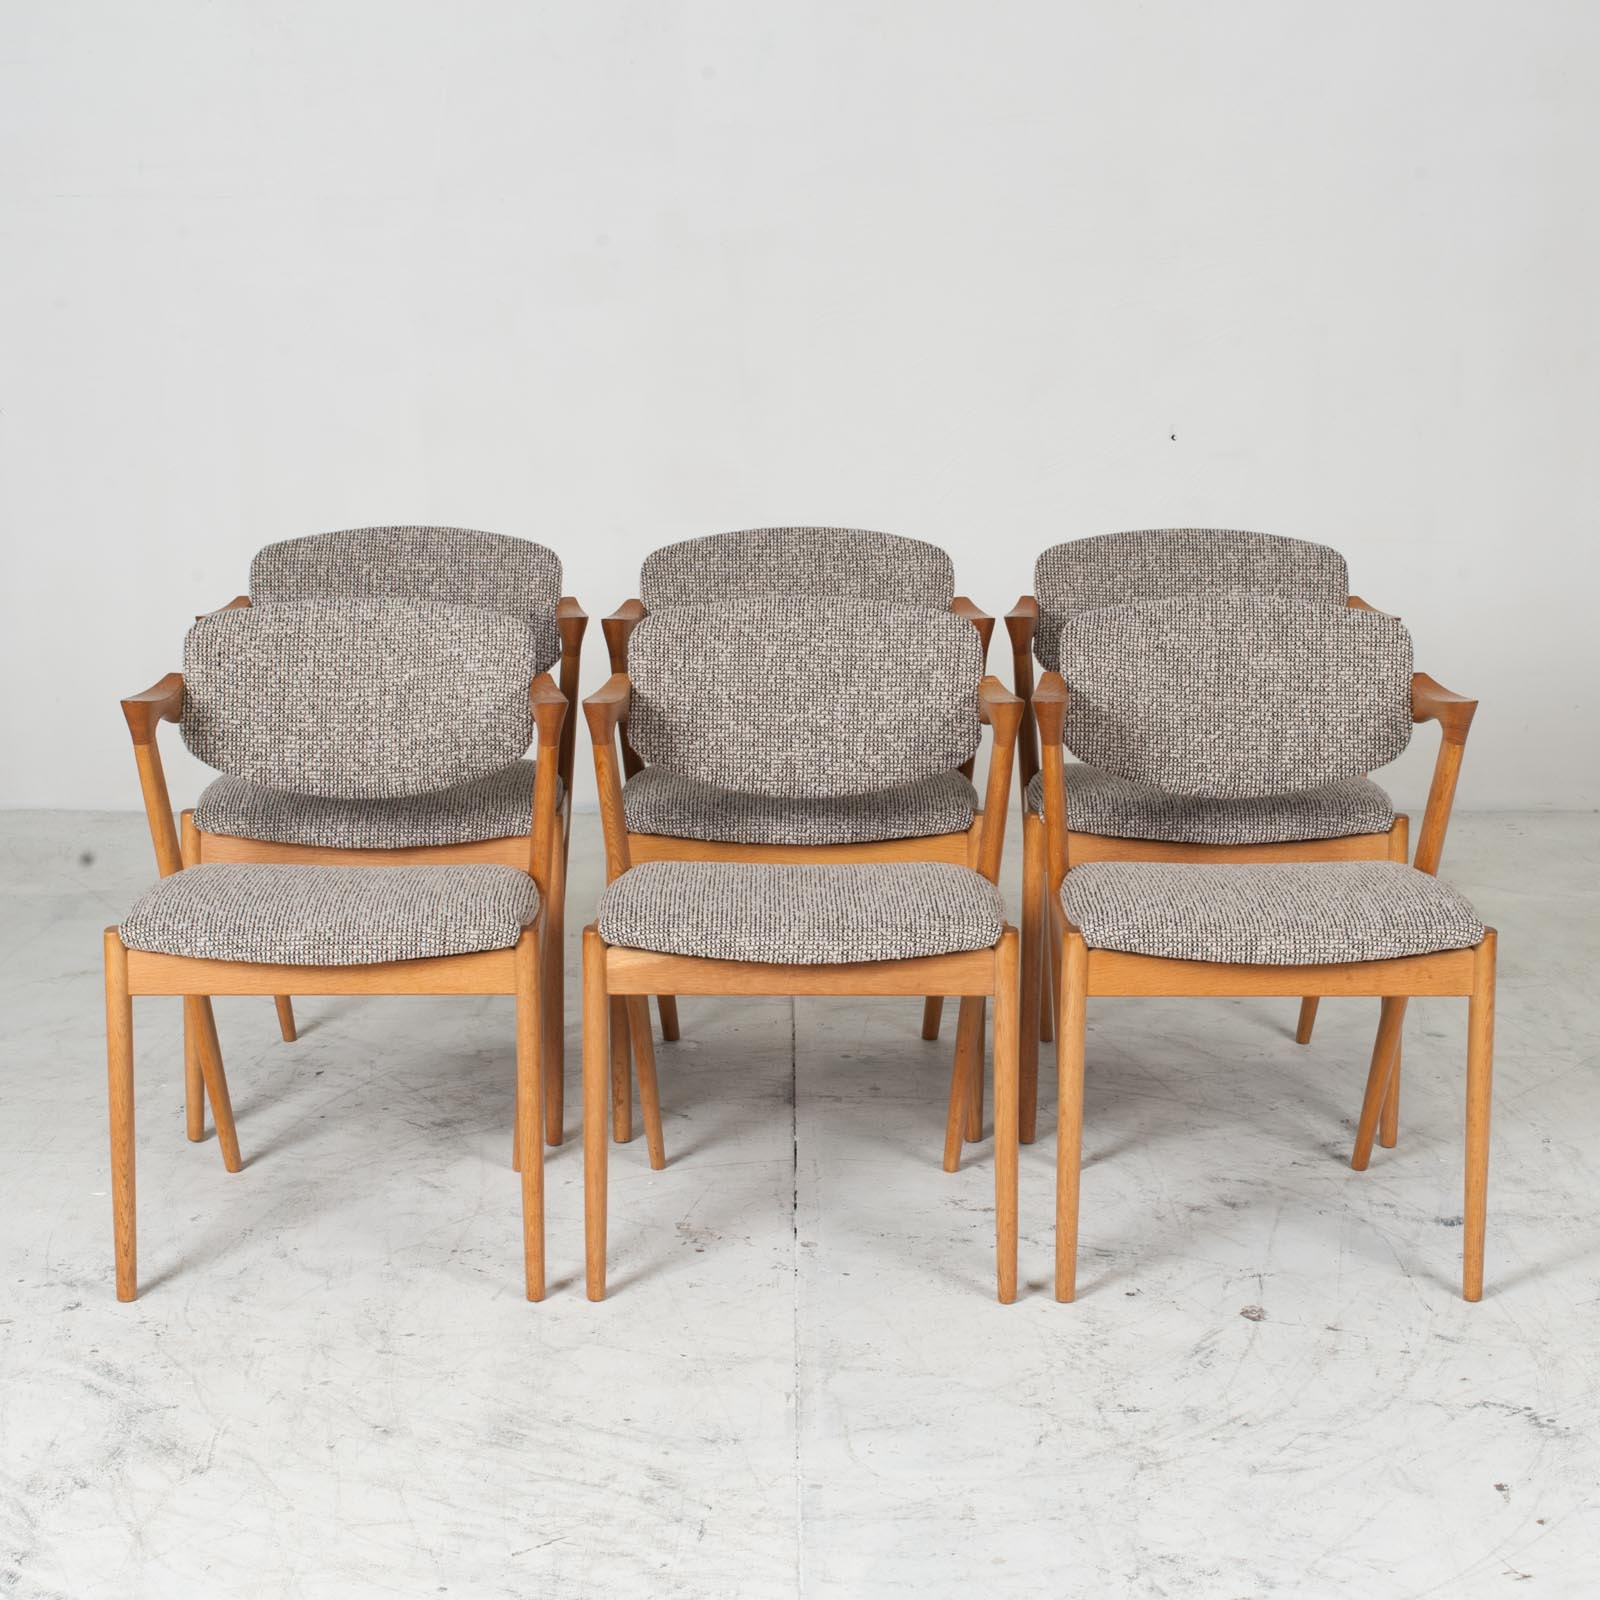 Set 6 No. 42 Dining Chairs By Kai Kristiansen In Oak 1960s Denmark 011